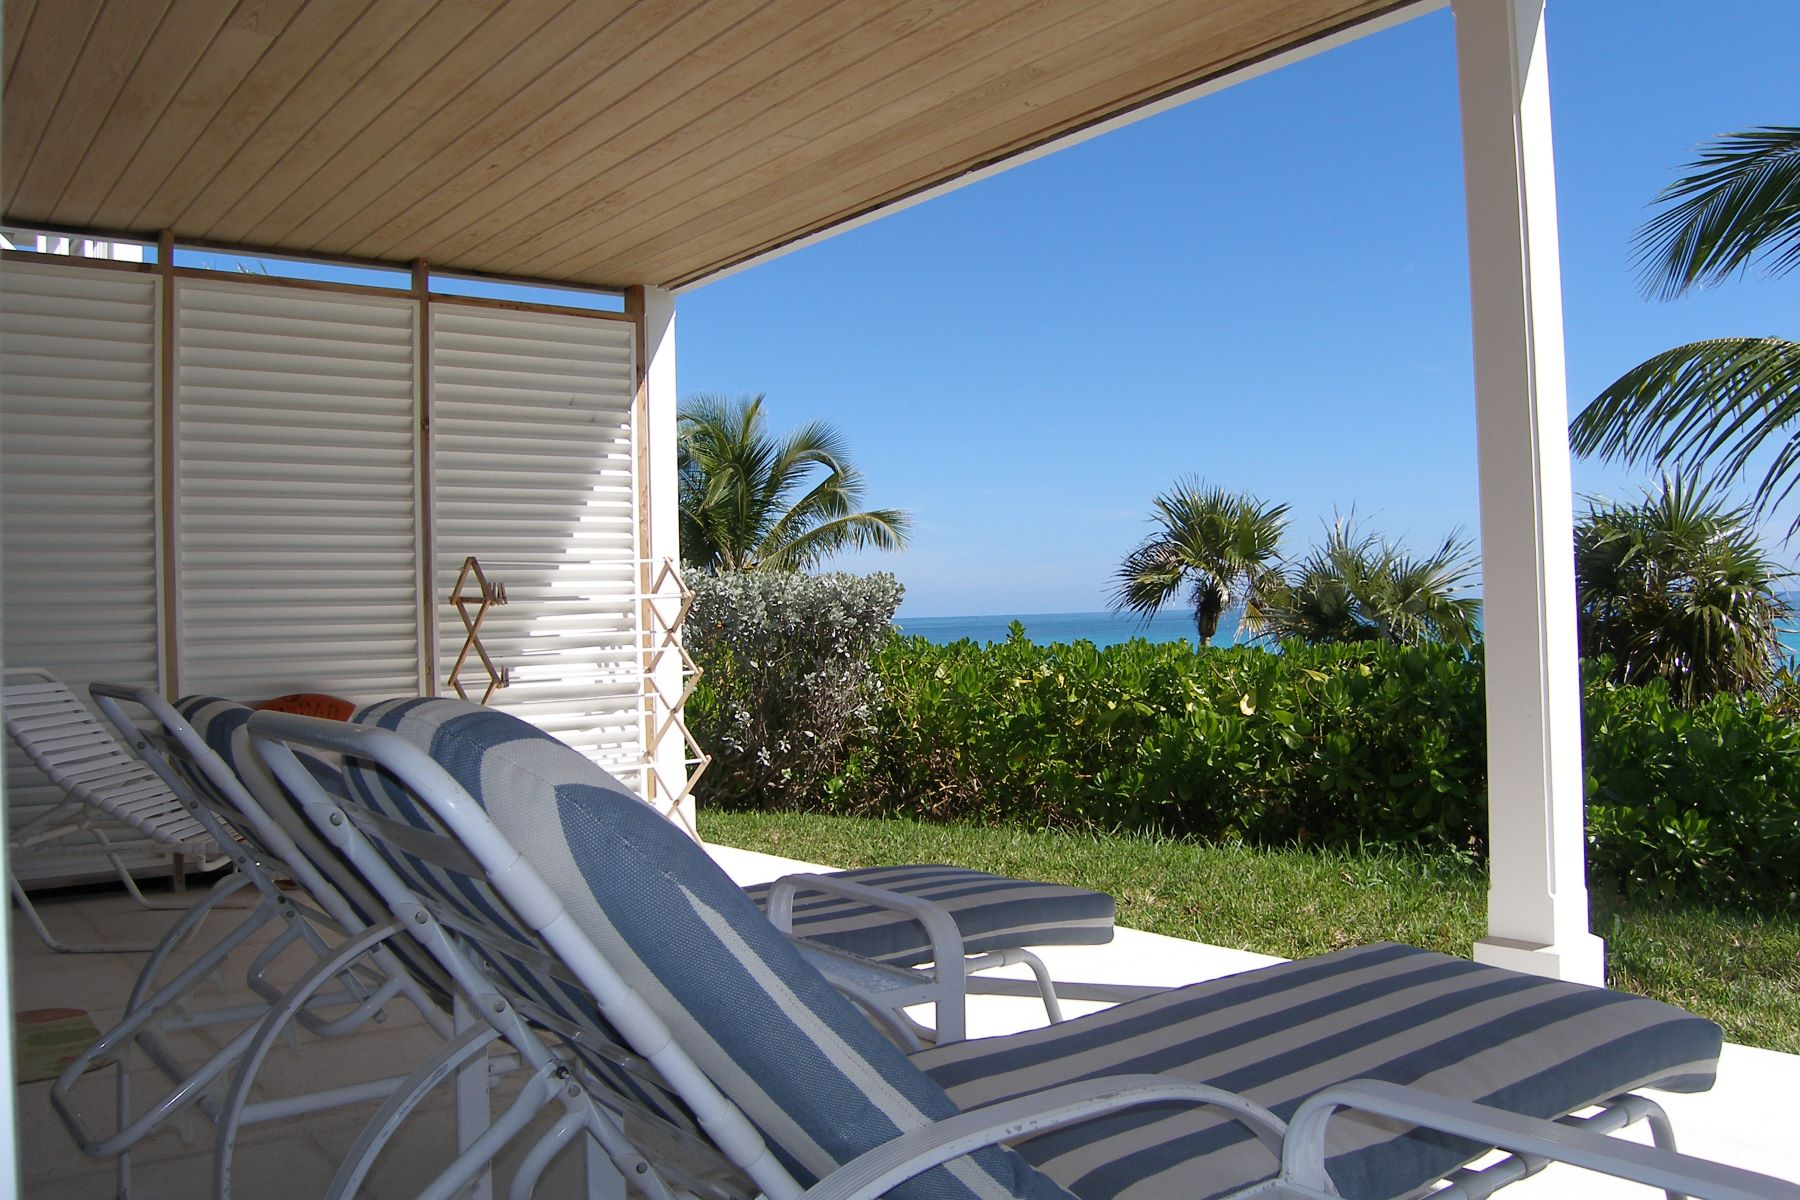 Additional photo for property listing at Windermere Beachfront Home Windermere Island, Eleuthera Bahamas